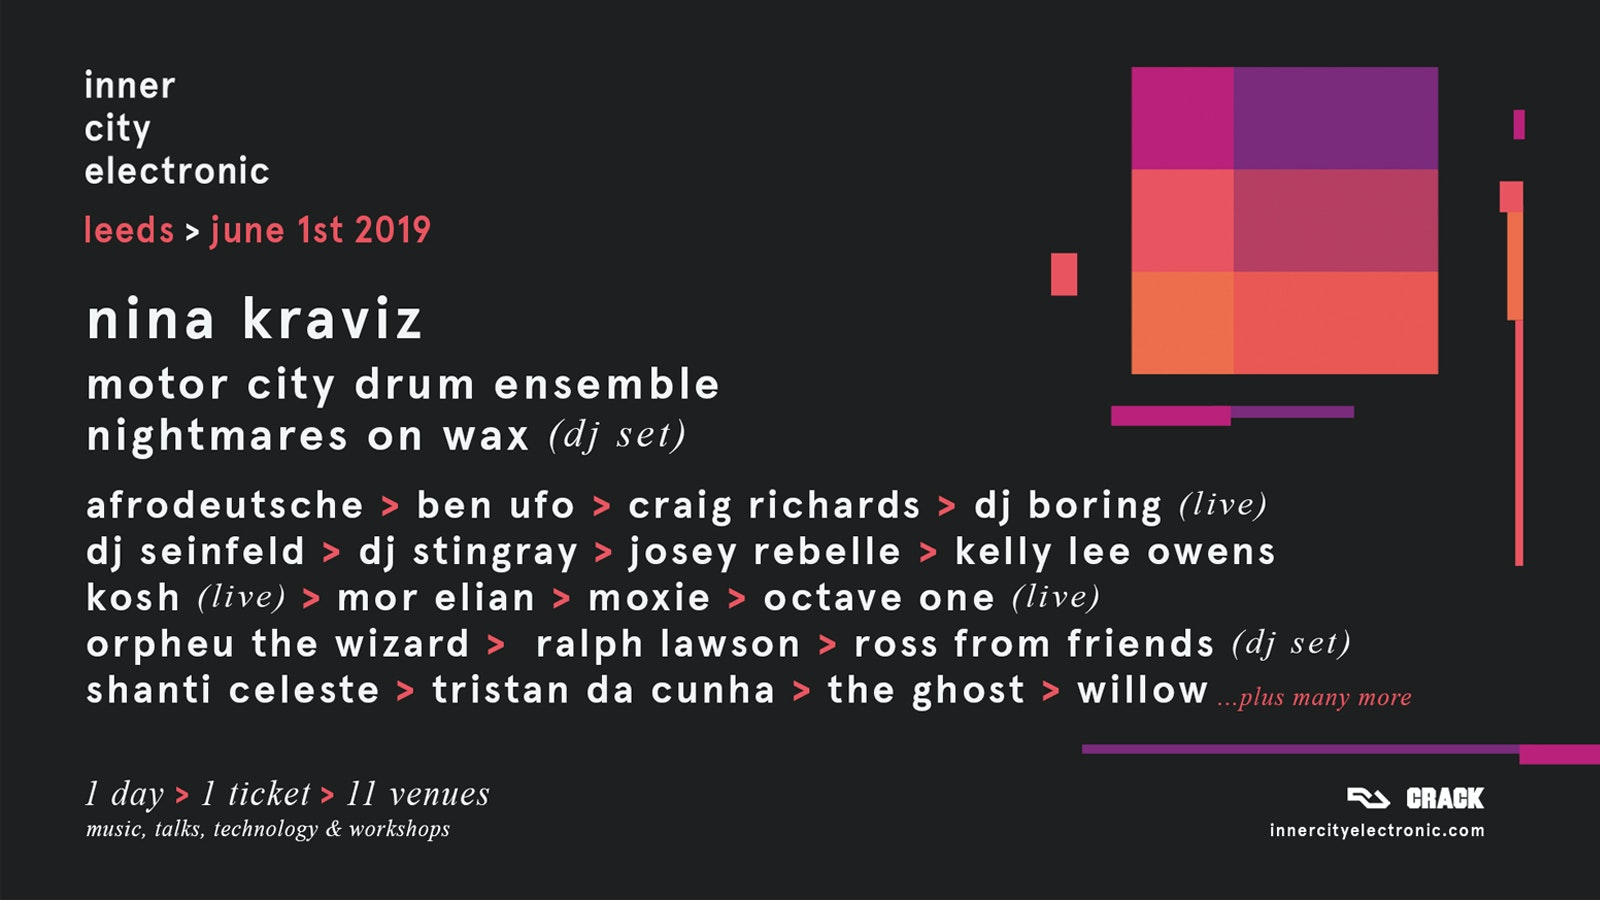 inner city electronic 2019